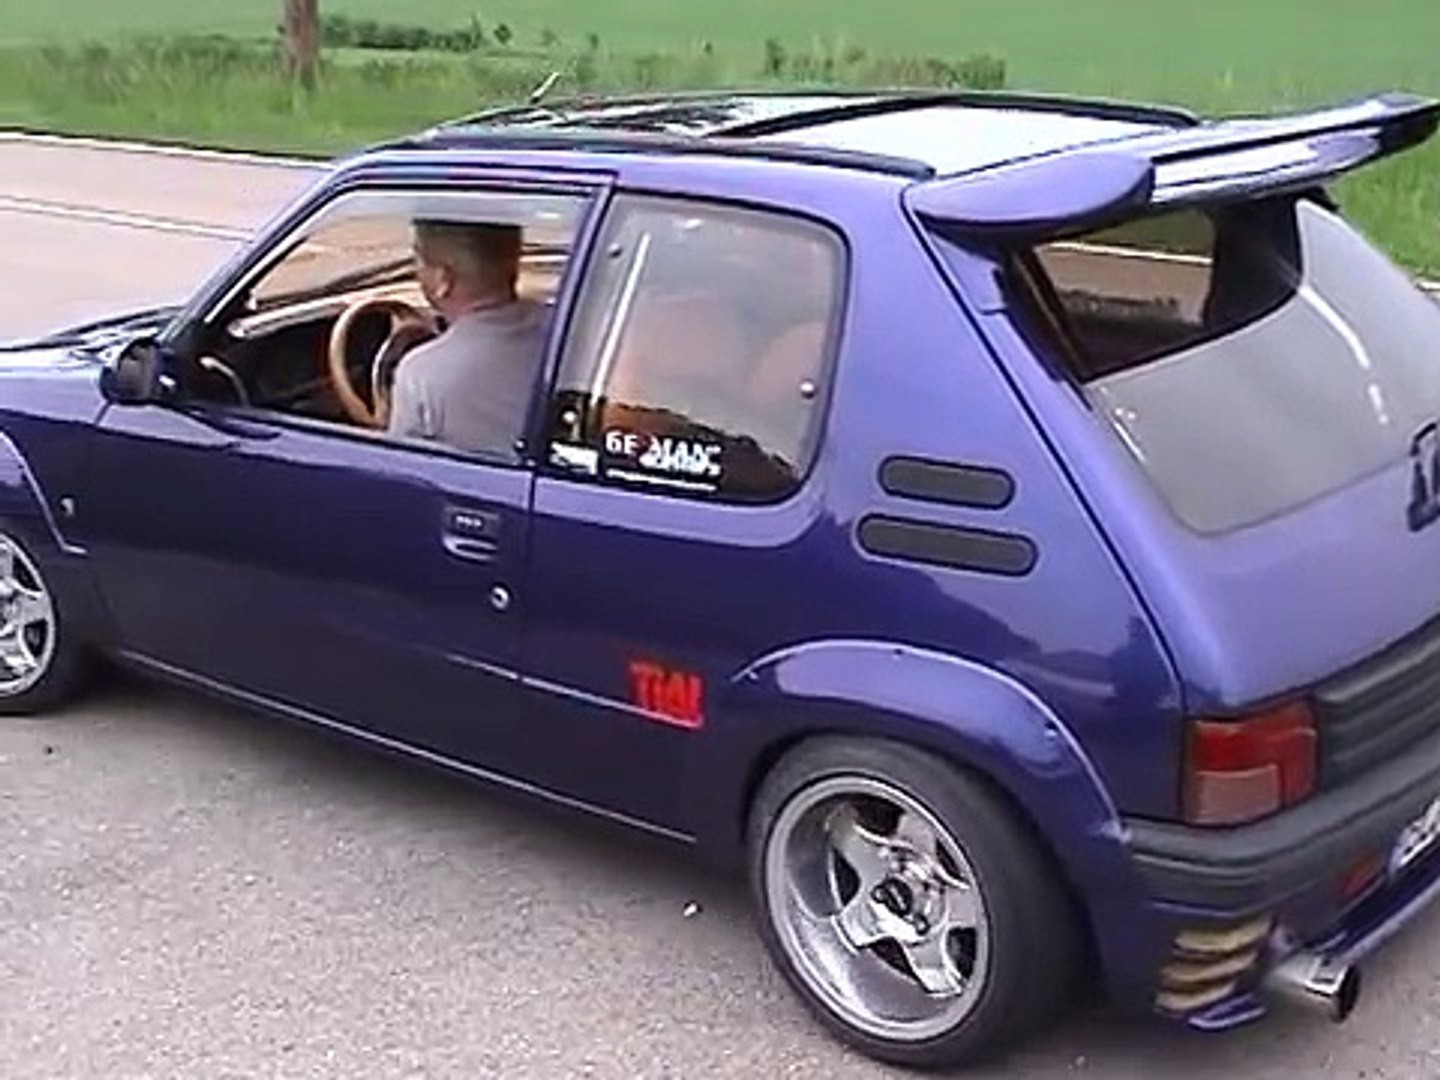 205 Gti Turbo Engine Of 405t16 Video Dailymotion